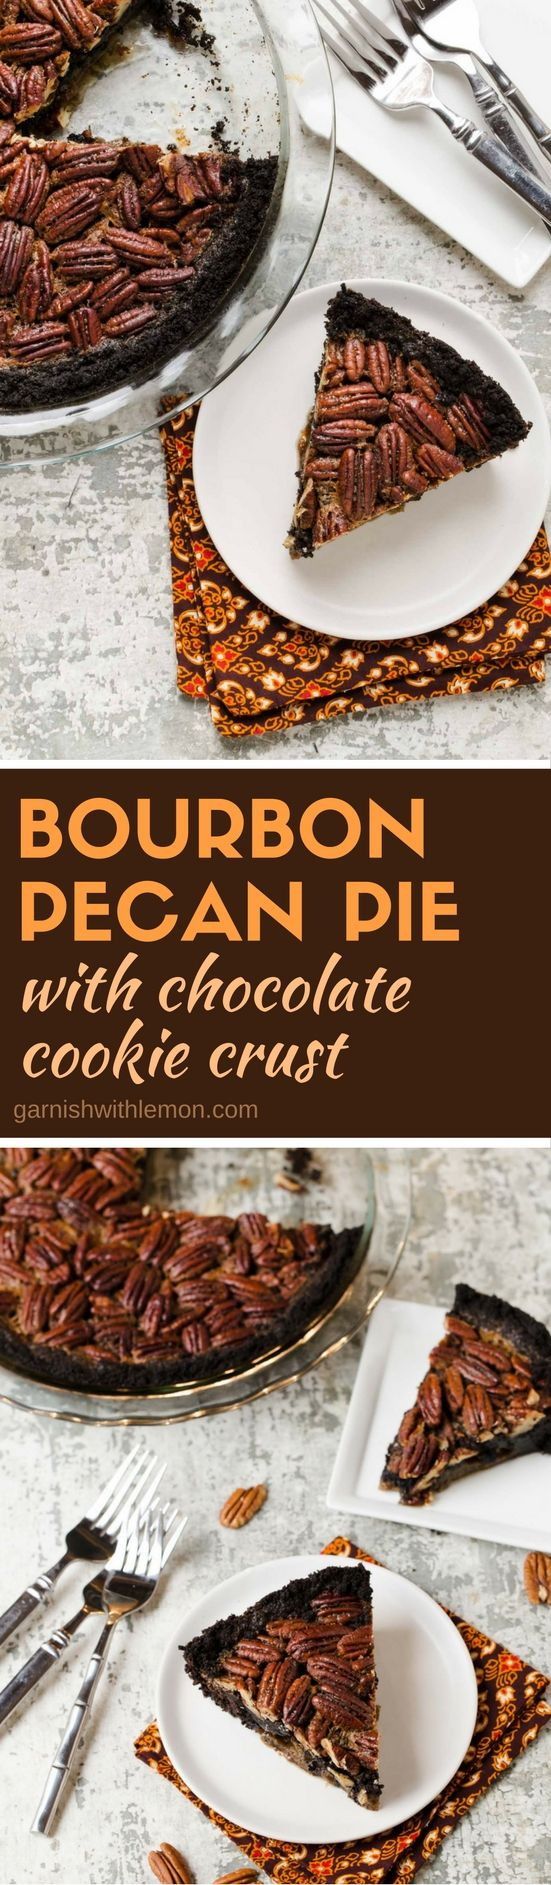 This Bourbon Pecan Pie with Chocolate Cookie Crust earns bonus points during the holidays as an easy make ahead dessert.